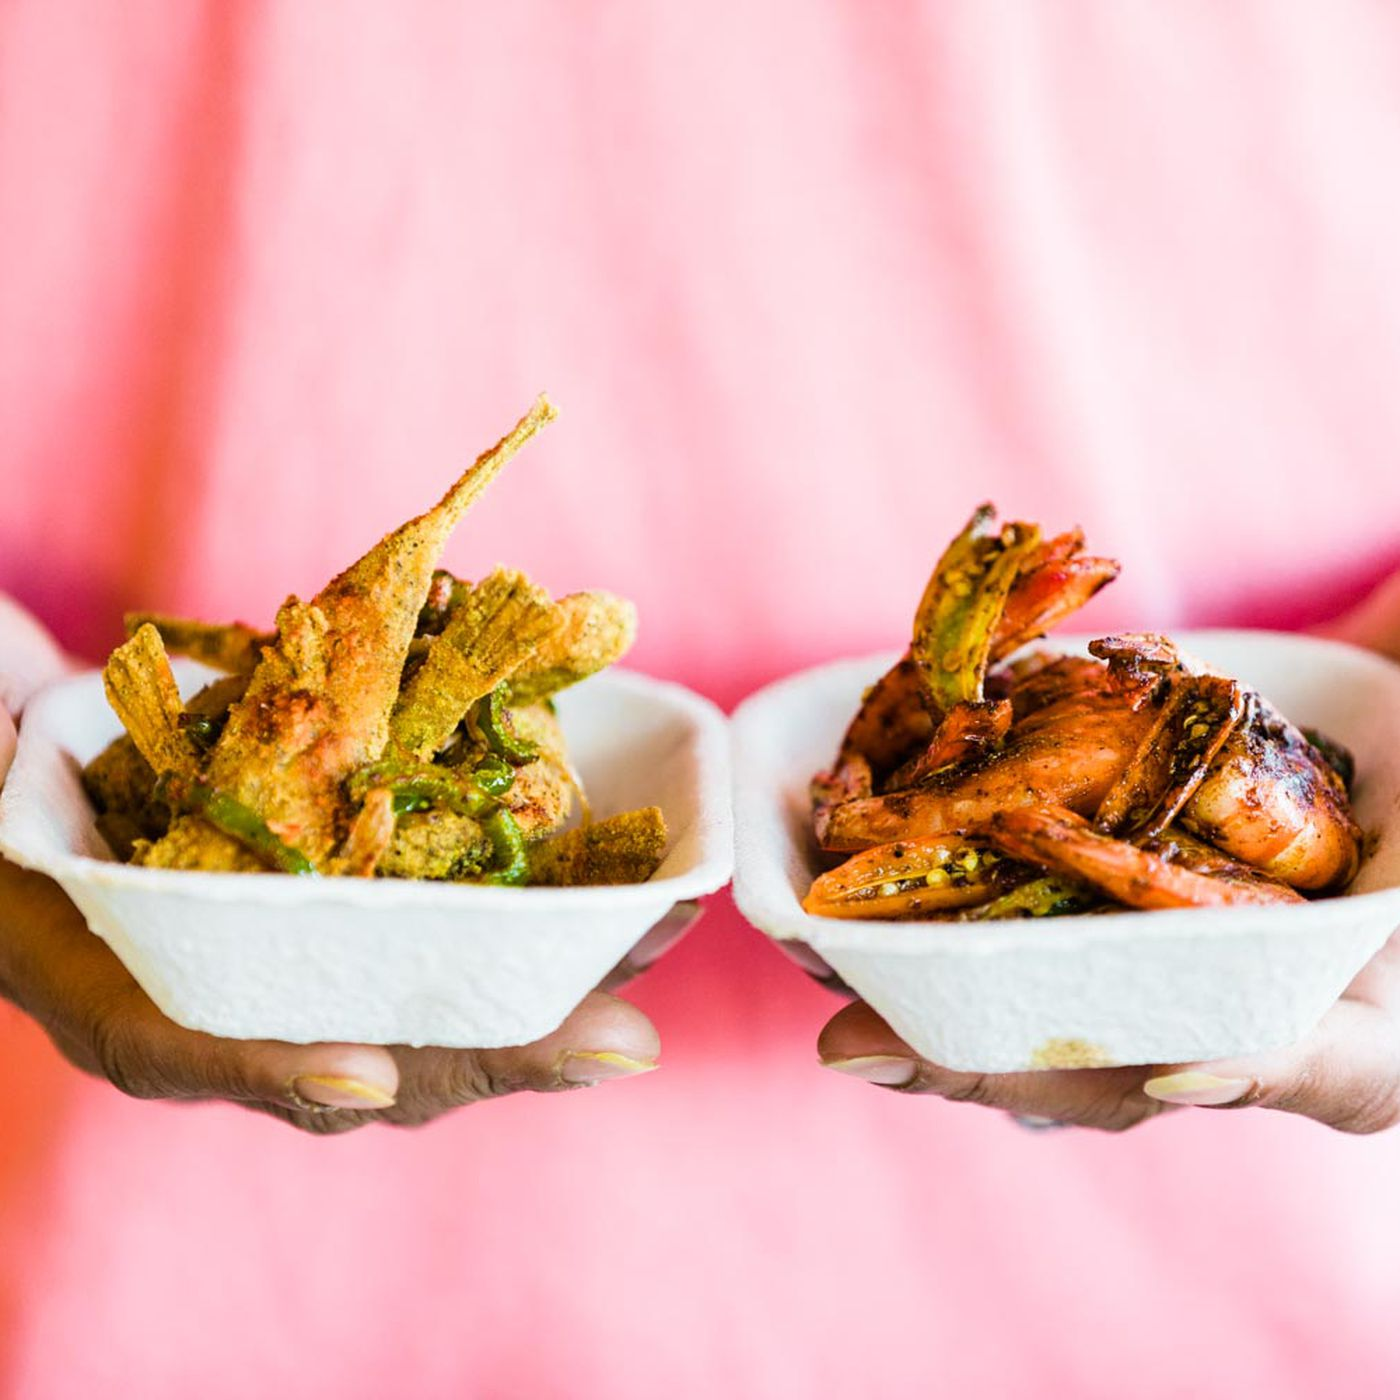 The 10 Best New Restaurants in Raleigh, Durham, and Chapel Hill - Eater